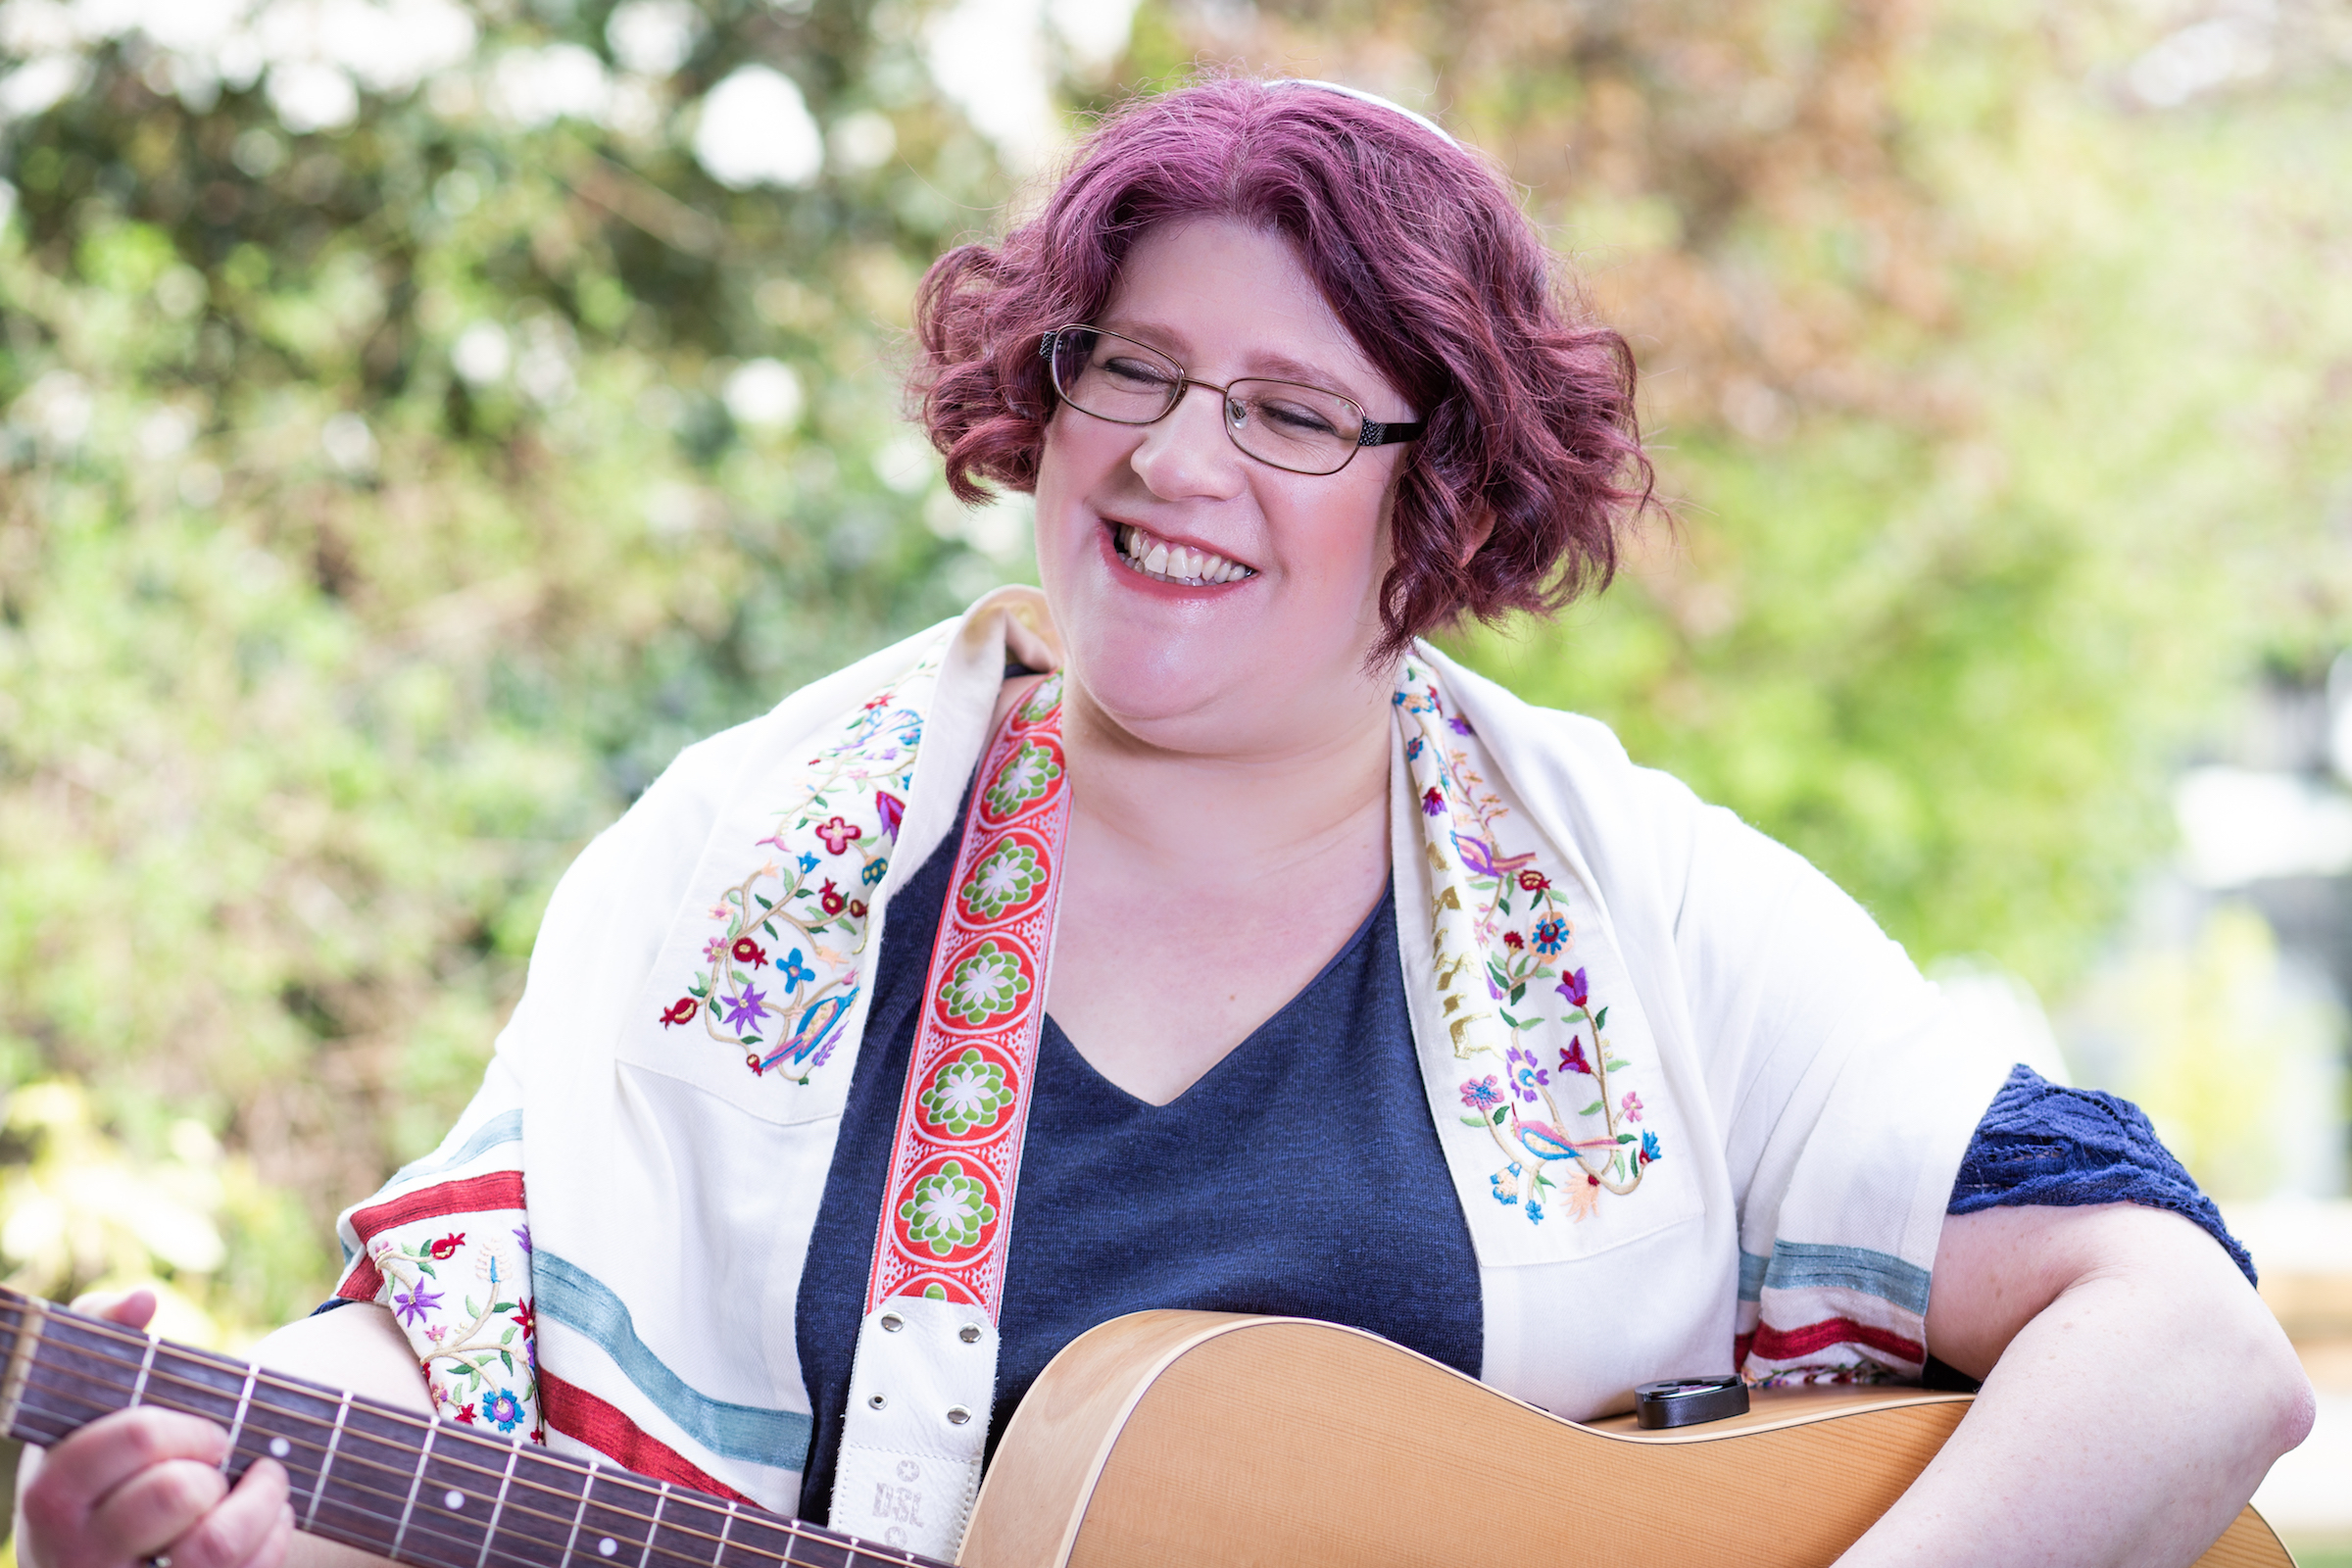 Mich Sampson - picture shows smiling woman wearing a tallit (prayer shawl) and playing the guitar. There is a leafy, sunny background.